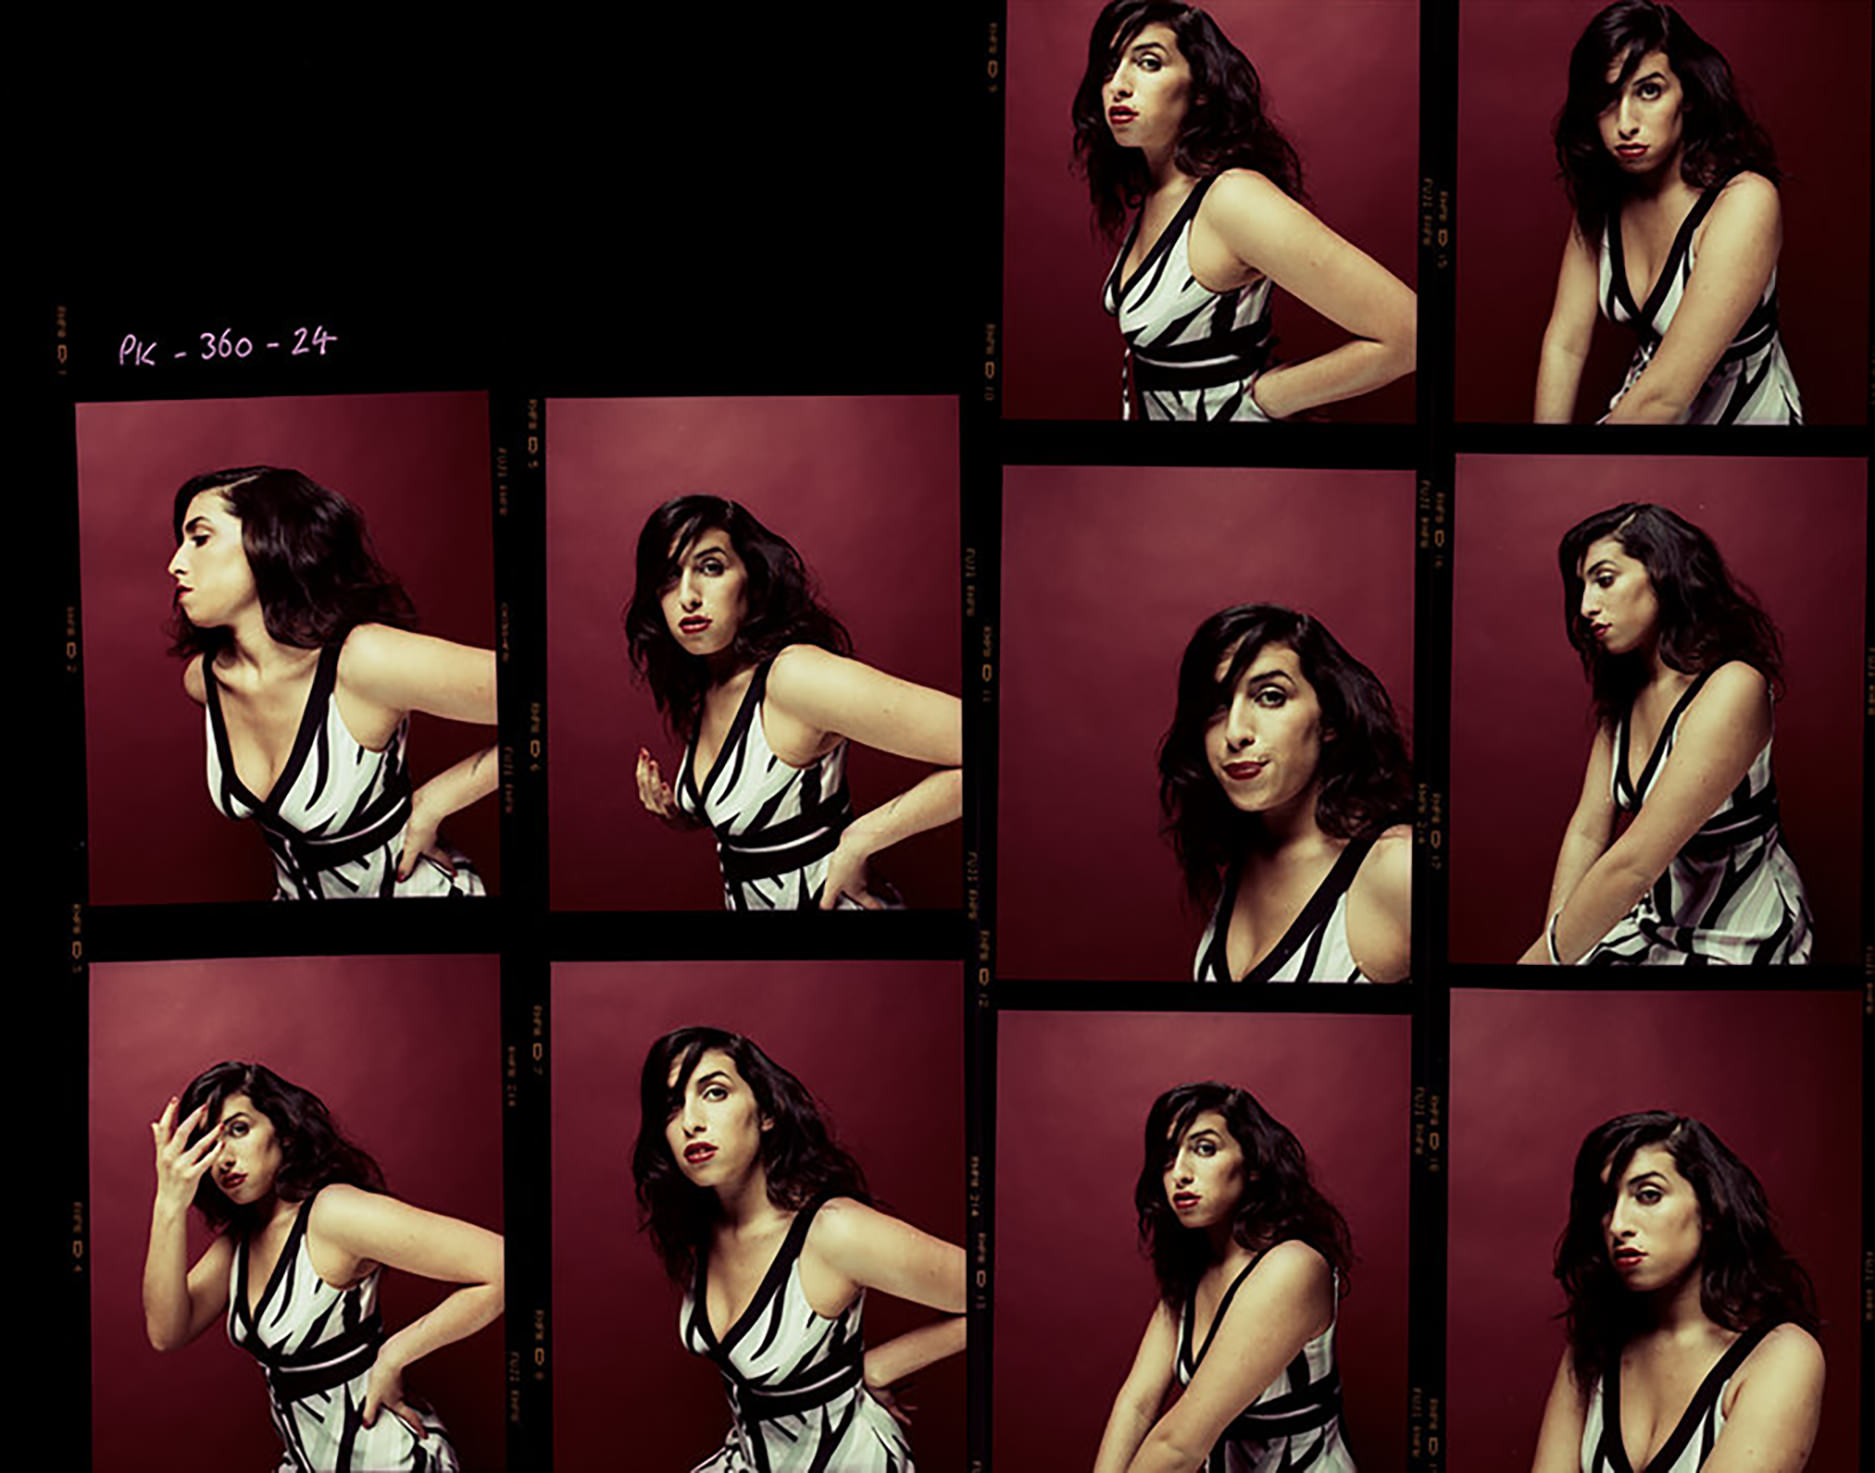 57e221683c59b02205433f8d_Amy-Winehouse-cr-Phil-Knott-7542-2016-billboard-1240